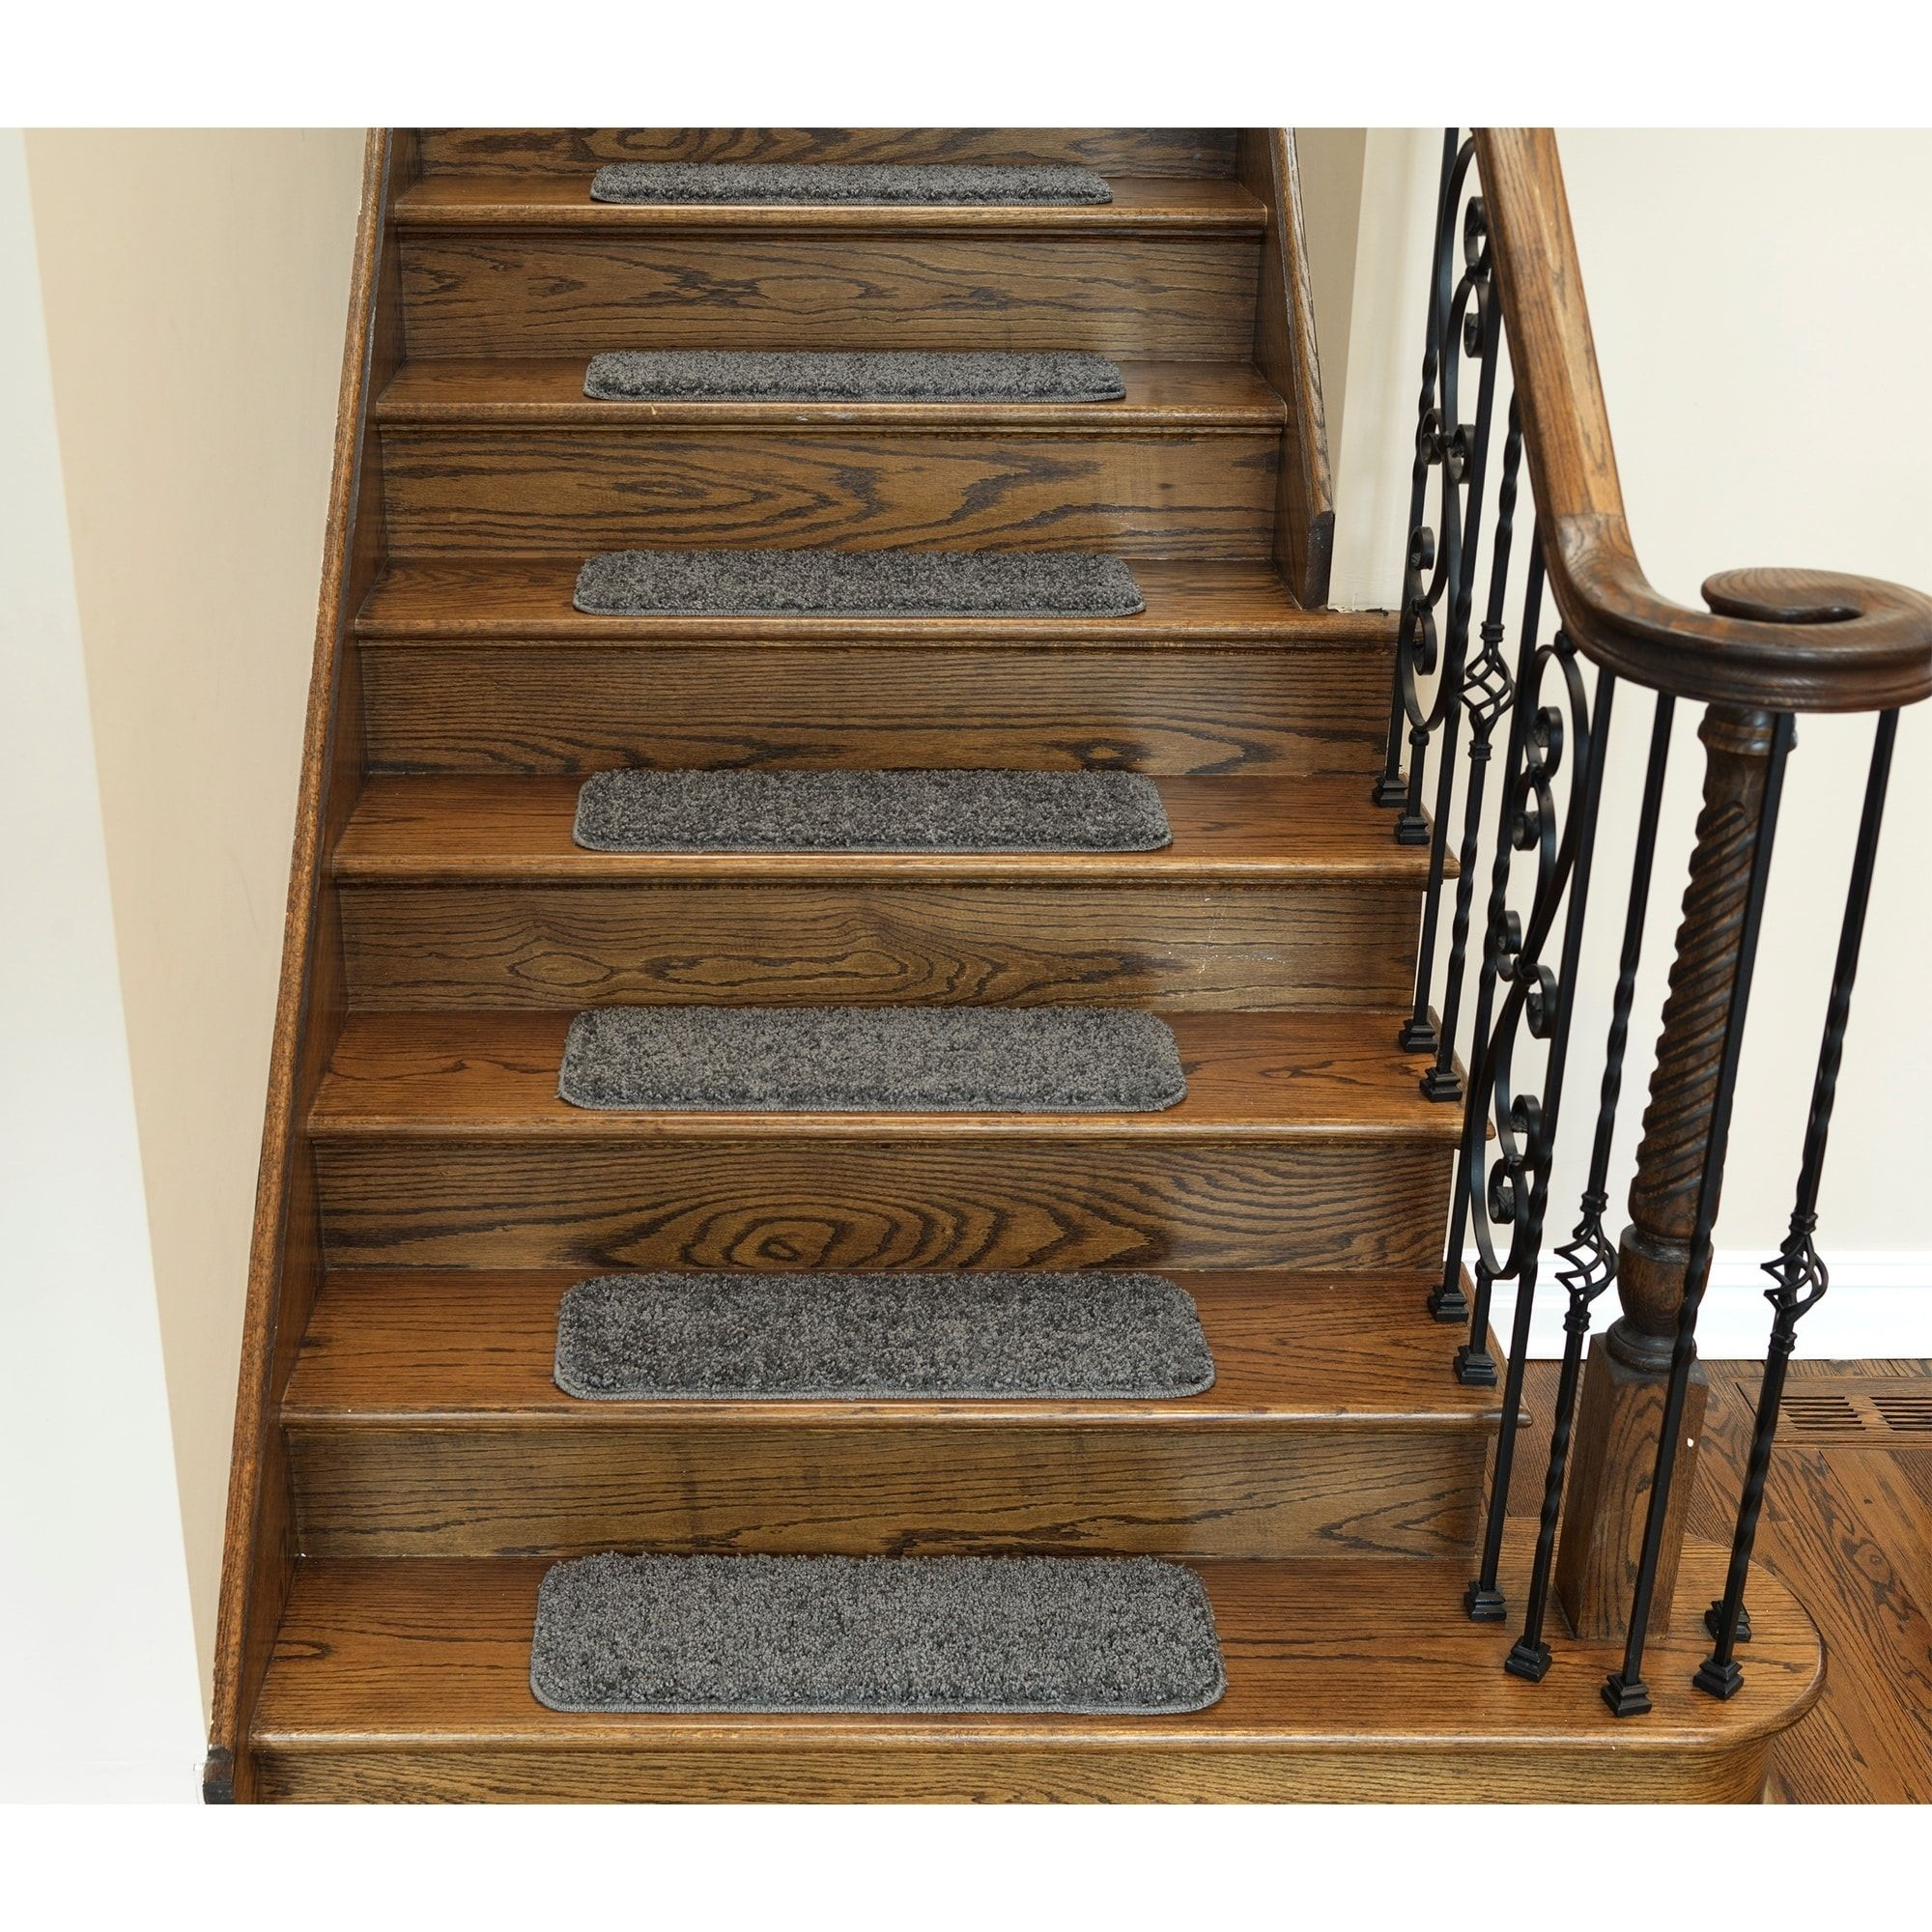 Best Sweethome Stores Non Slip Sh*G Carpet Stair Treads 5 Pack 400 x 300